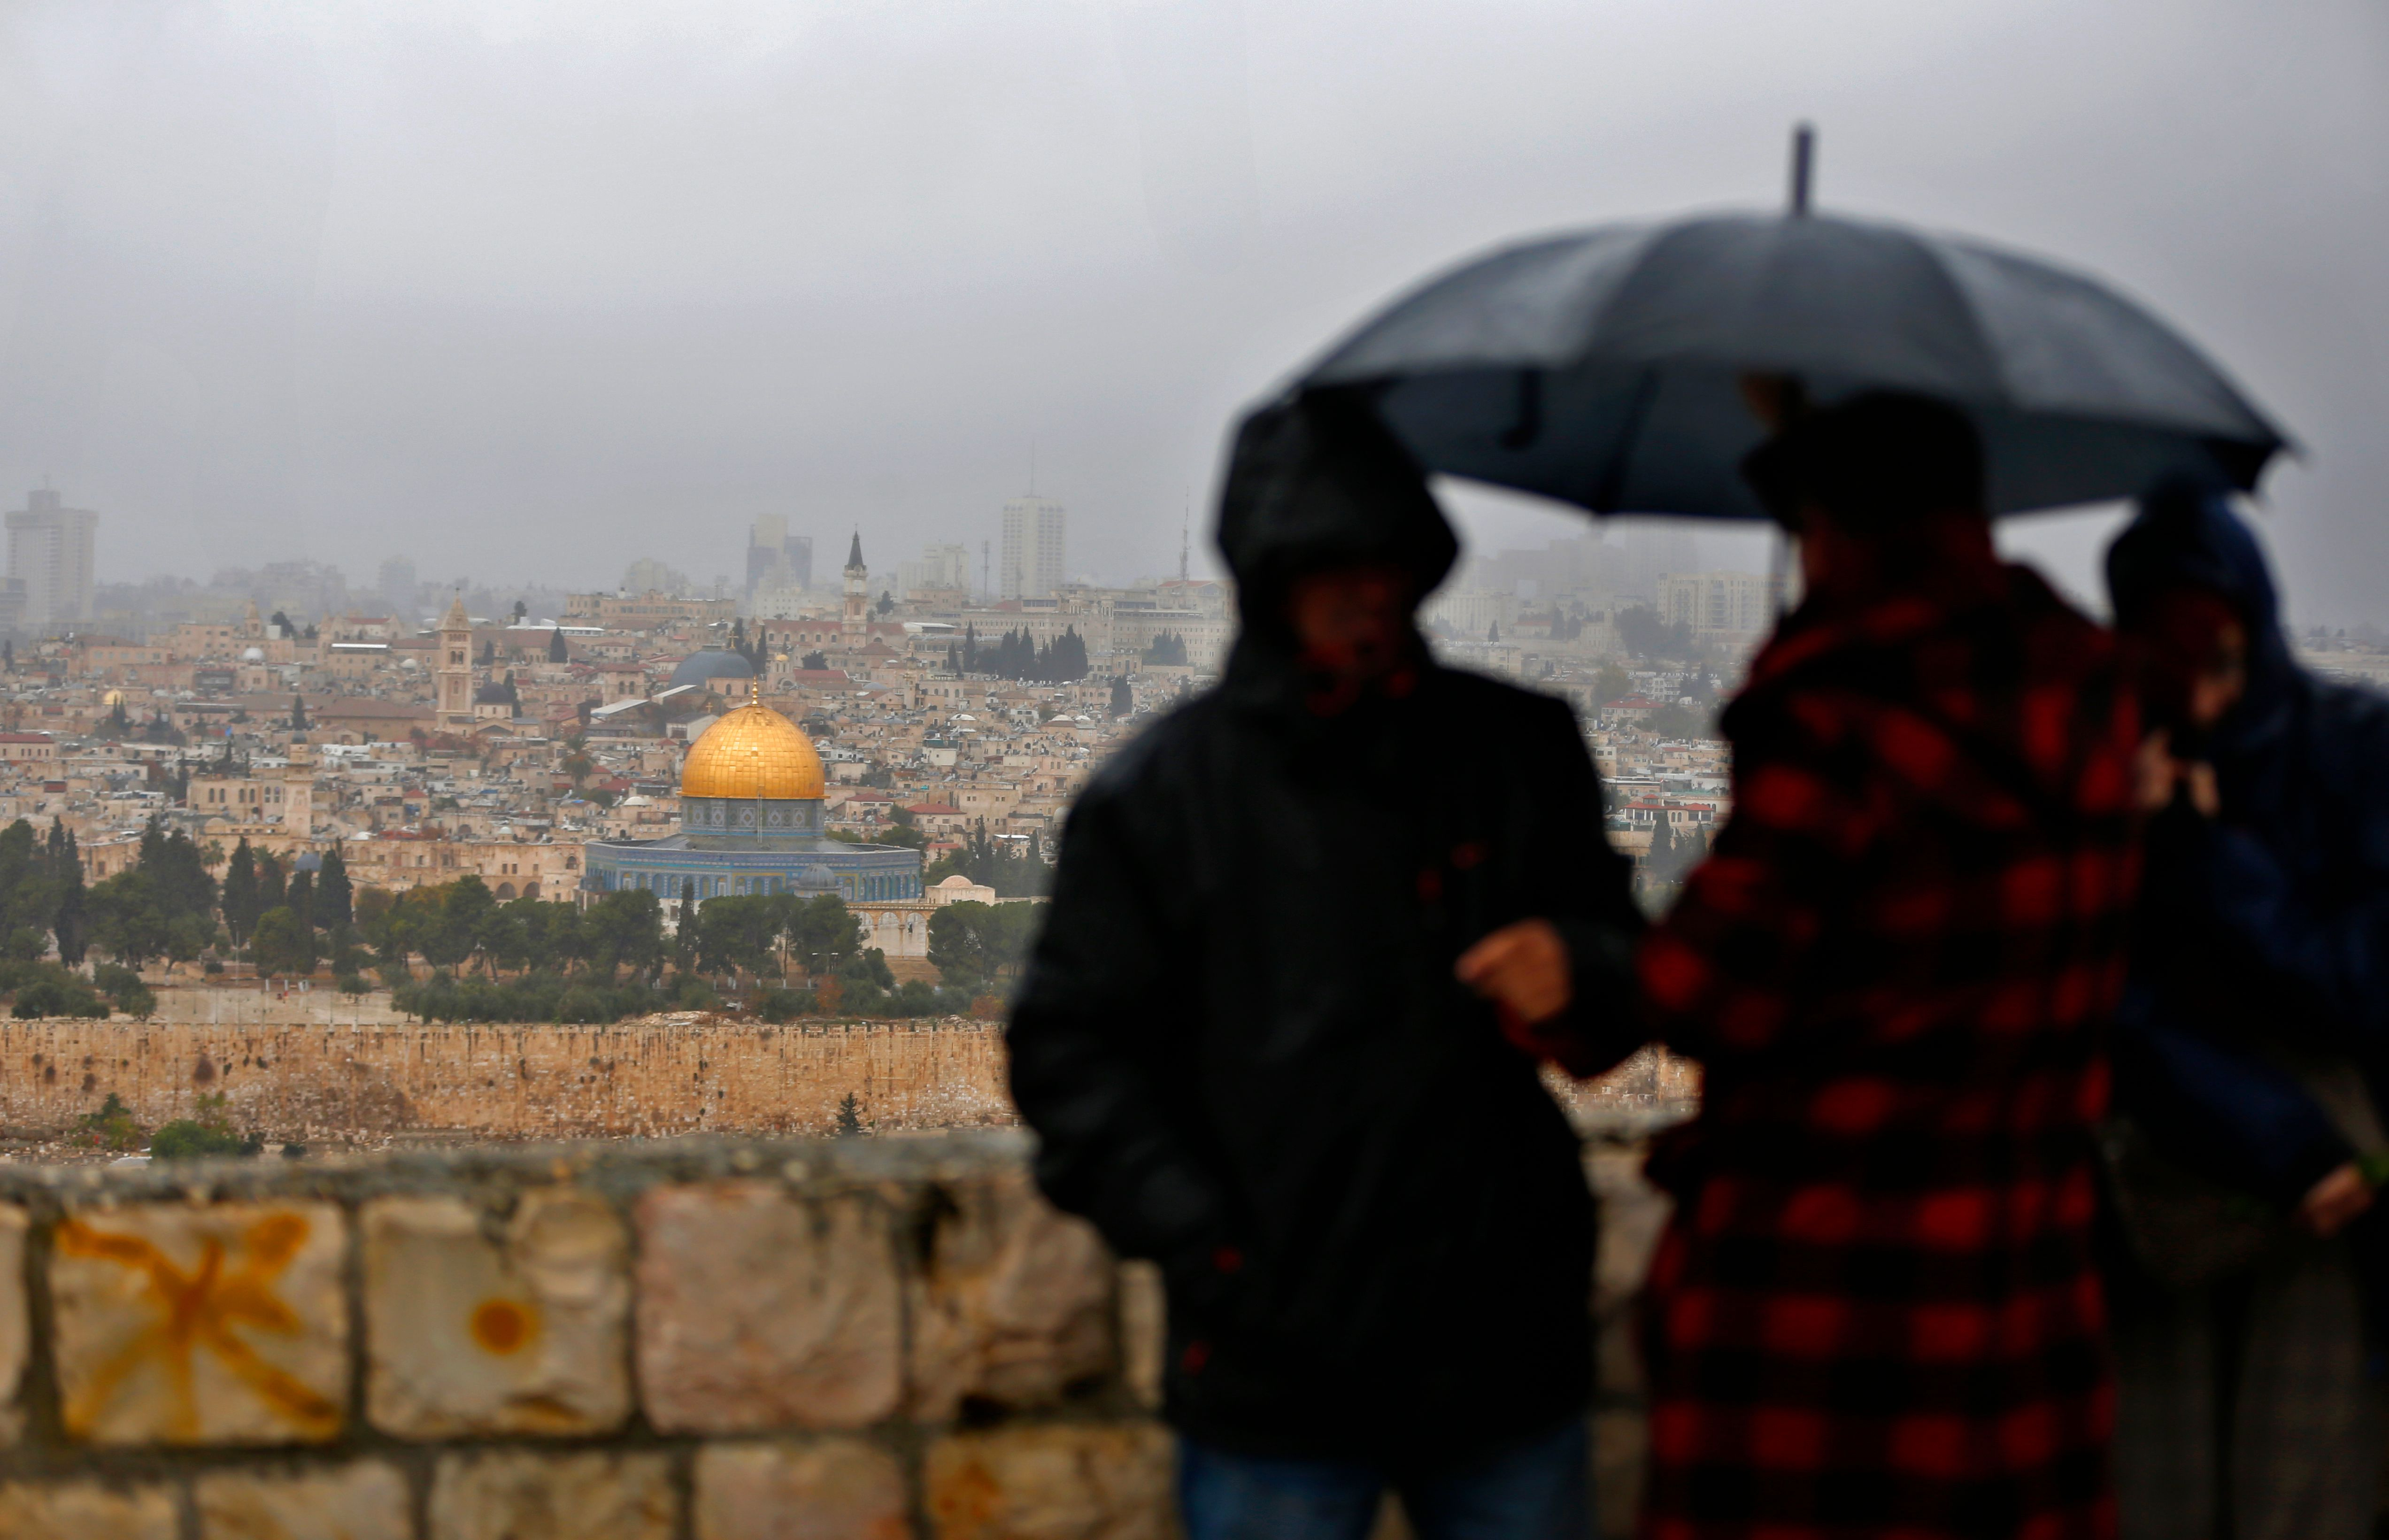 People stand at Mount of Olives and look at the Old City of Jerusalem and its Dome of the Rock mosque in the centre, on December 6, 2017. President Donald Trump is set to recognise Jerusalem as Israel's capital, upending decades of careful US policy and ignoring dire warnings from Arab and Western allies alike of a historic misstep that could trigger a surge of violence in the Middle East. / AFP PHOTO / AHMAD GHARABLI (Photo credit should read AHMAD GHARABLI/AFP/Getty Images)